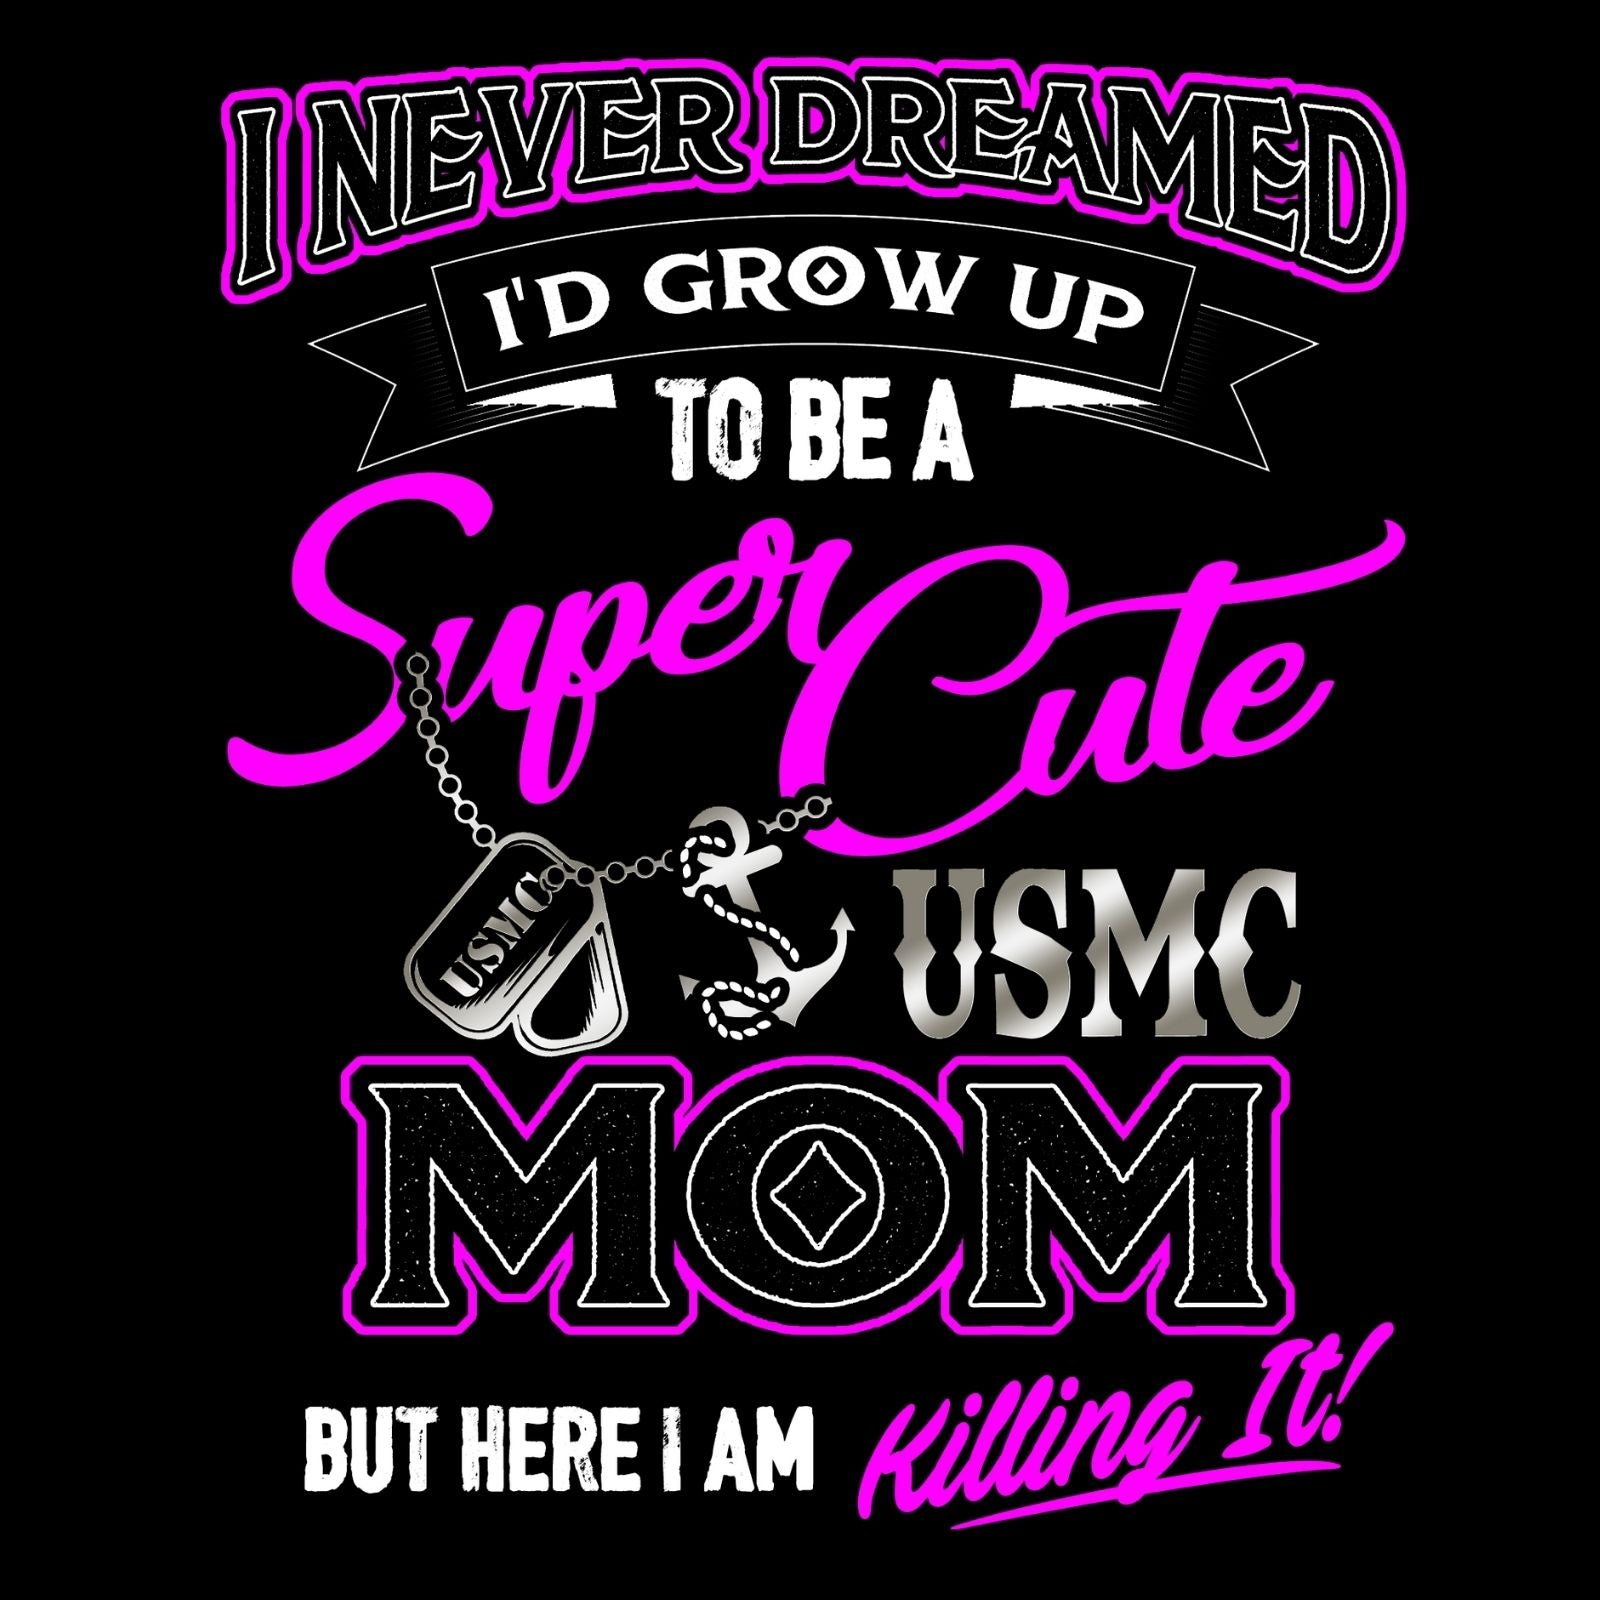 I Never Dreamed I'd Grow Up To Be A Super Cute USMC MOM But Here I Am Killing It! - Bastard Graphics